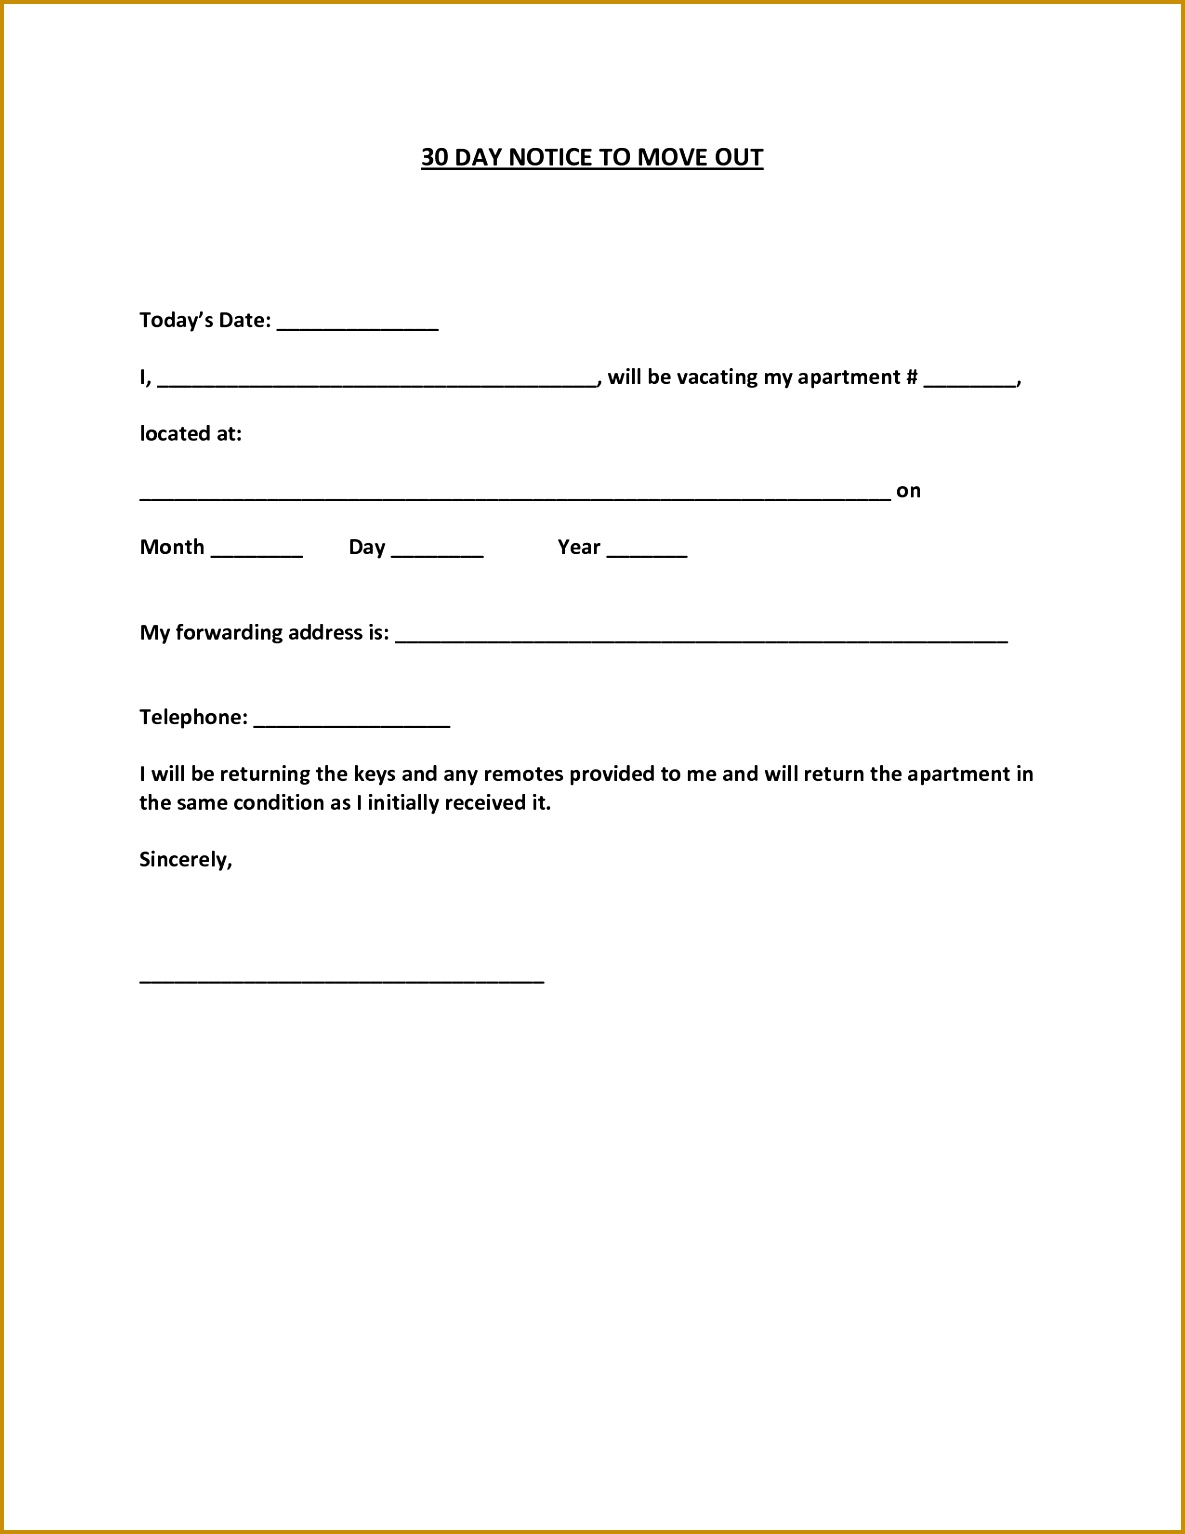 30 day move out notice template 15341185